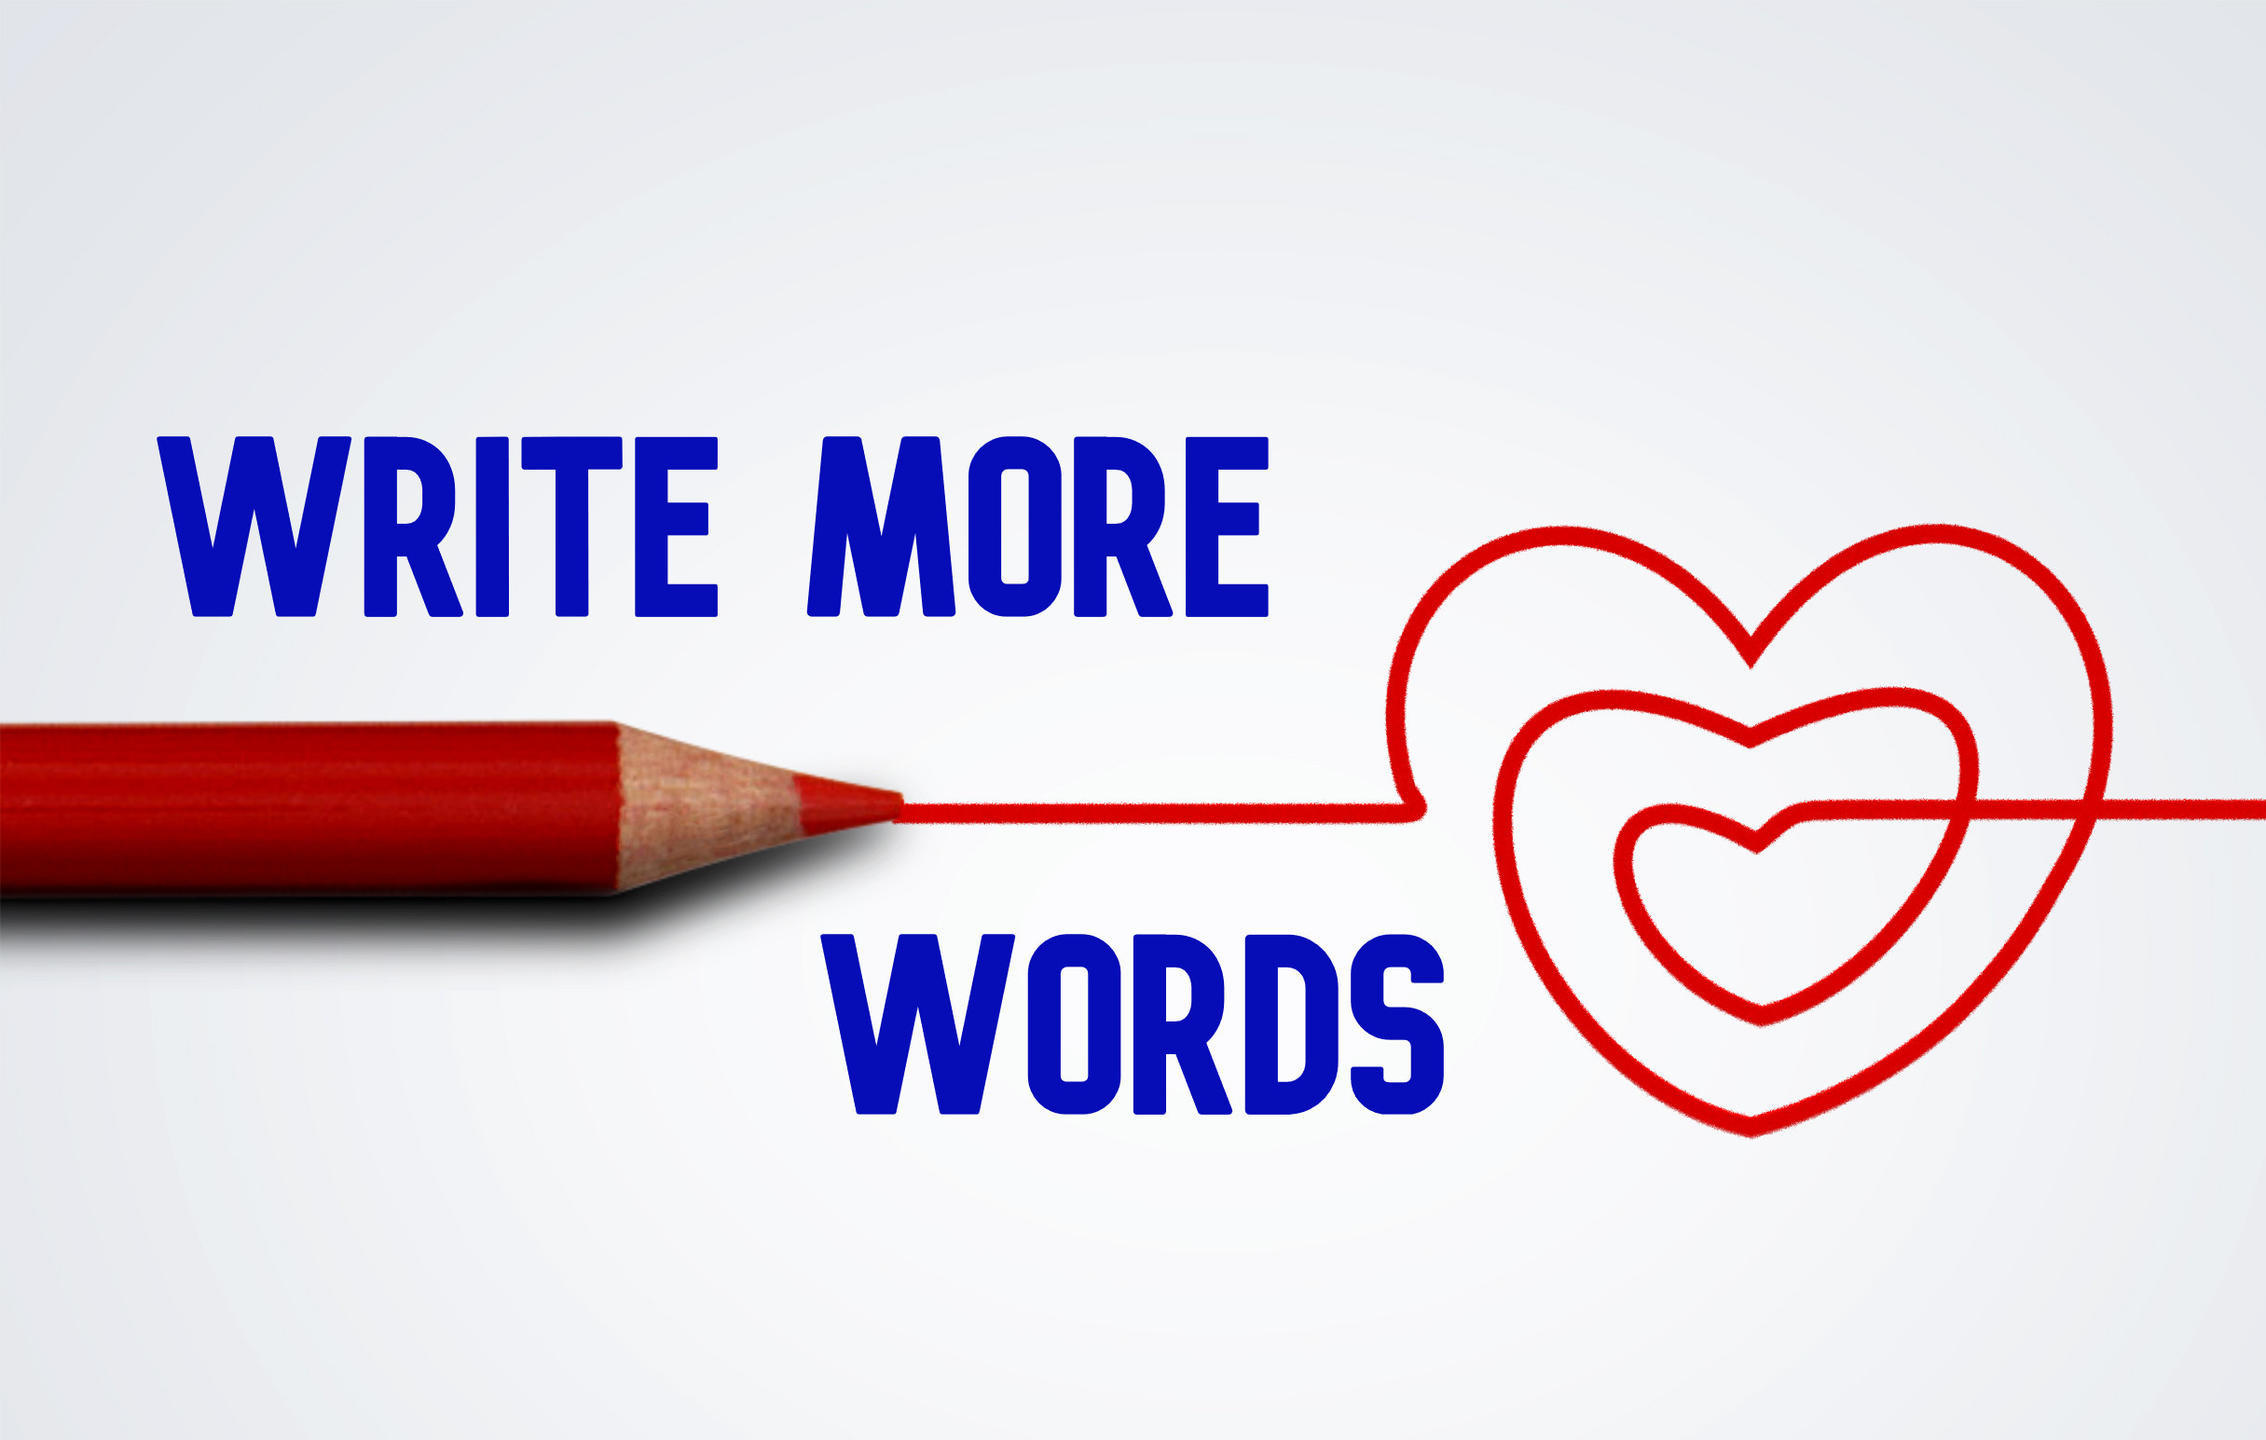 Write More Words heart logo